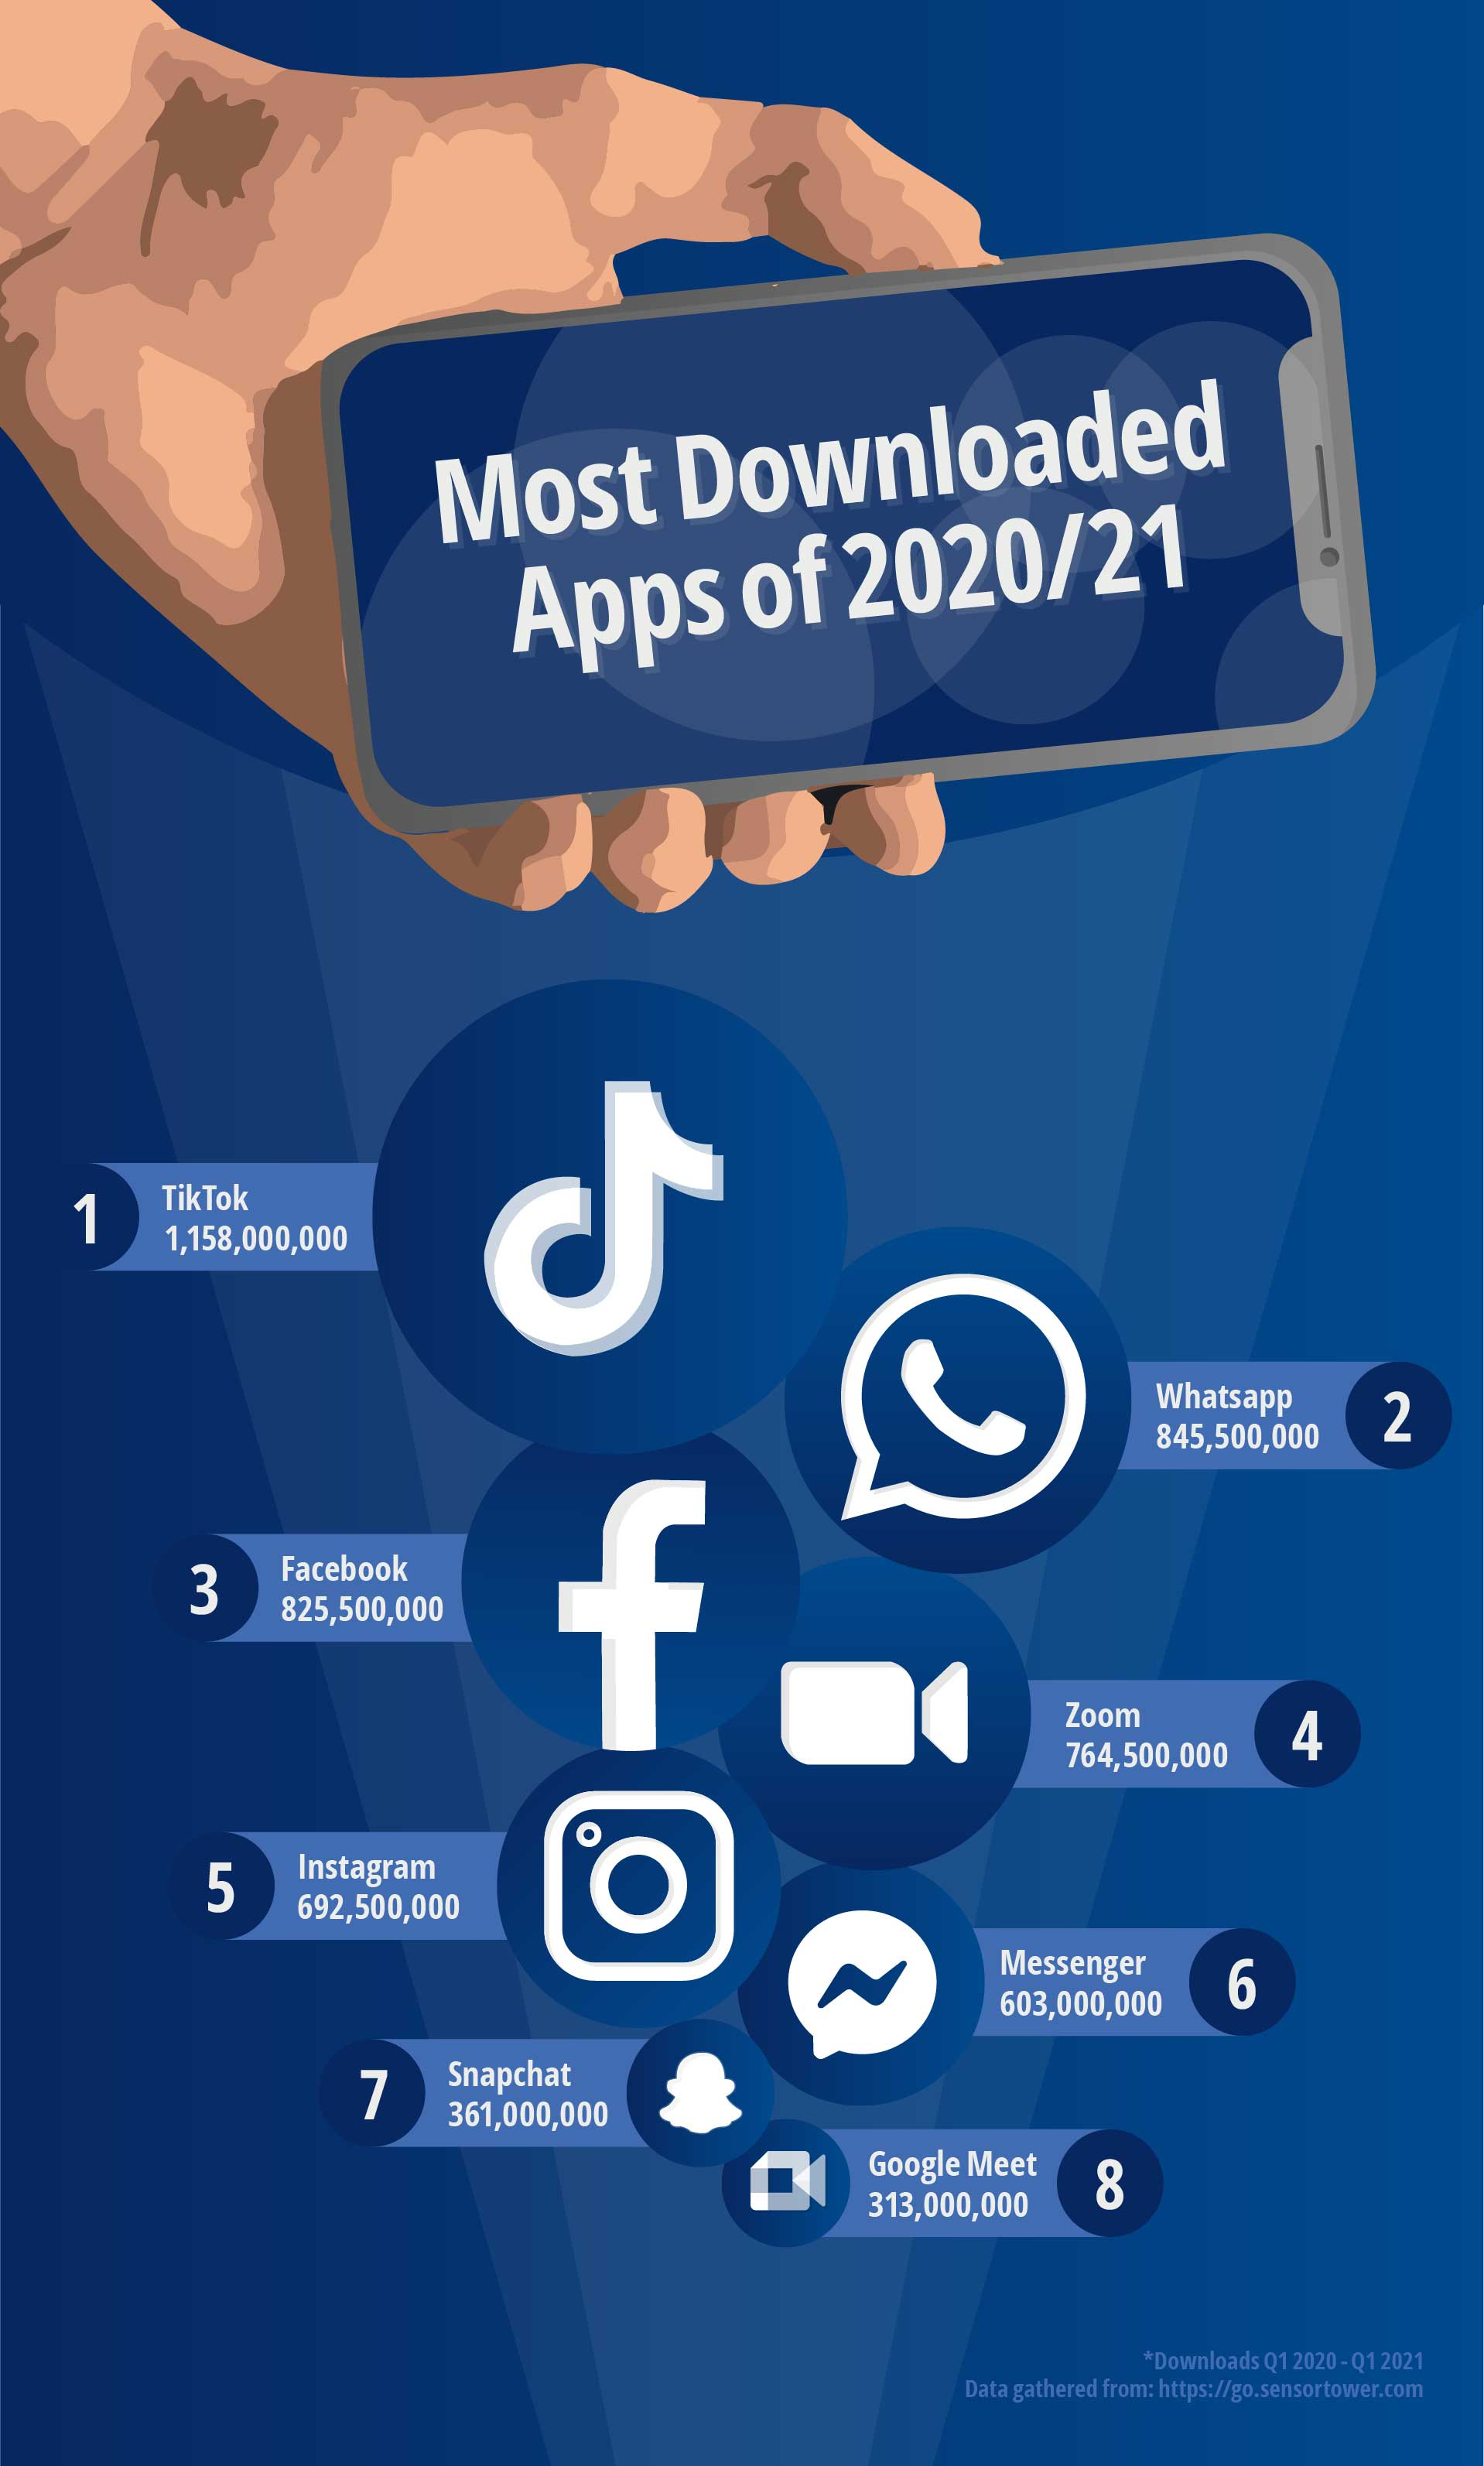 Most downloaded apps of 2020/21